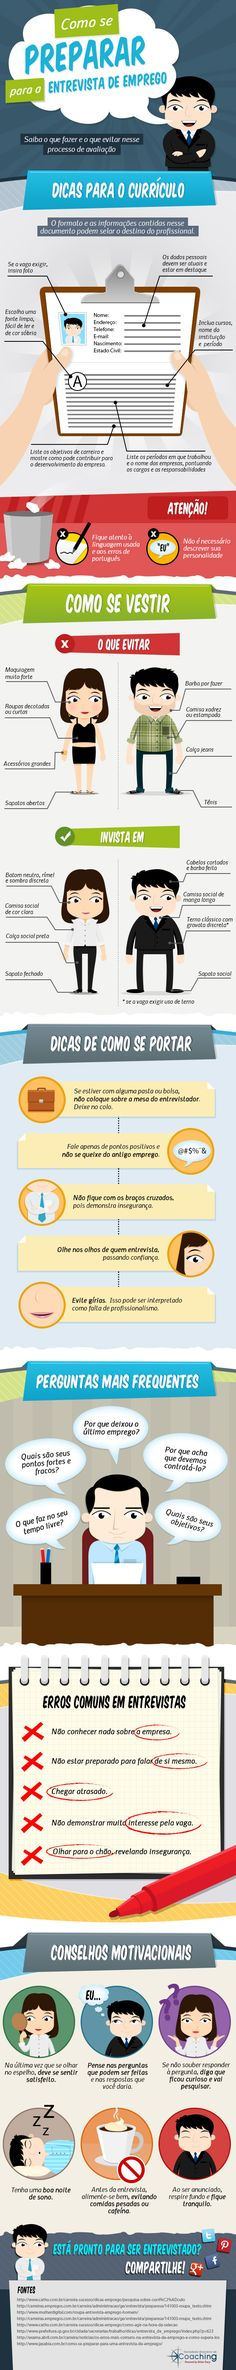 #HR Infográfico com dicas para entrevista de emprego – SBCoaching.com.br Experiment, Keep Calm And Relax, Job Interview Tips, Always Learning, Student Life, Management Tips, Human Resources, Study Tips, Career Advice